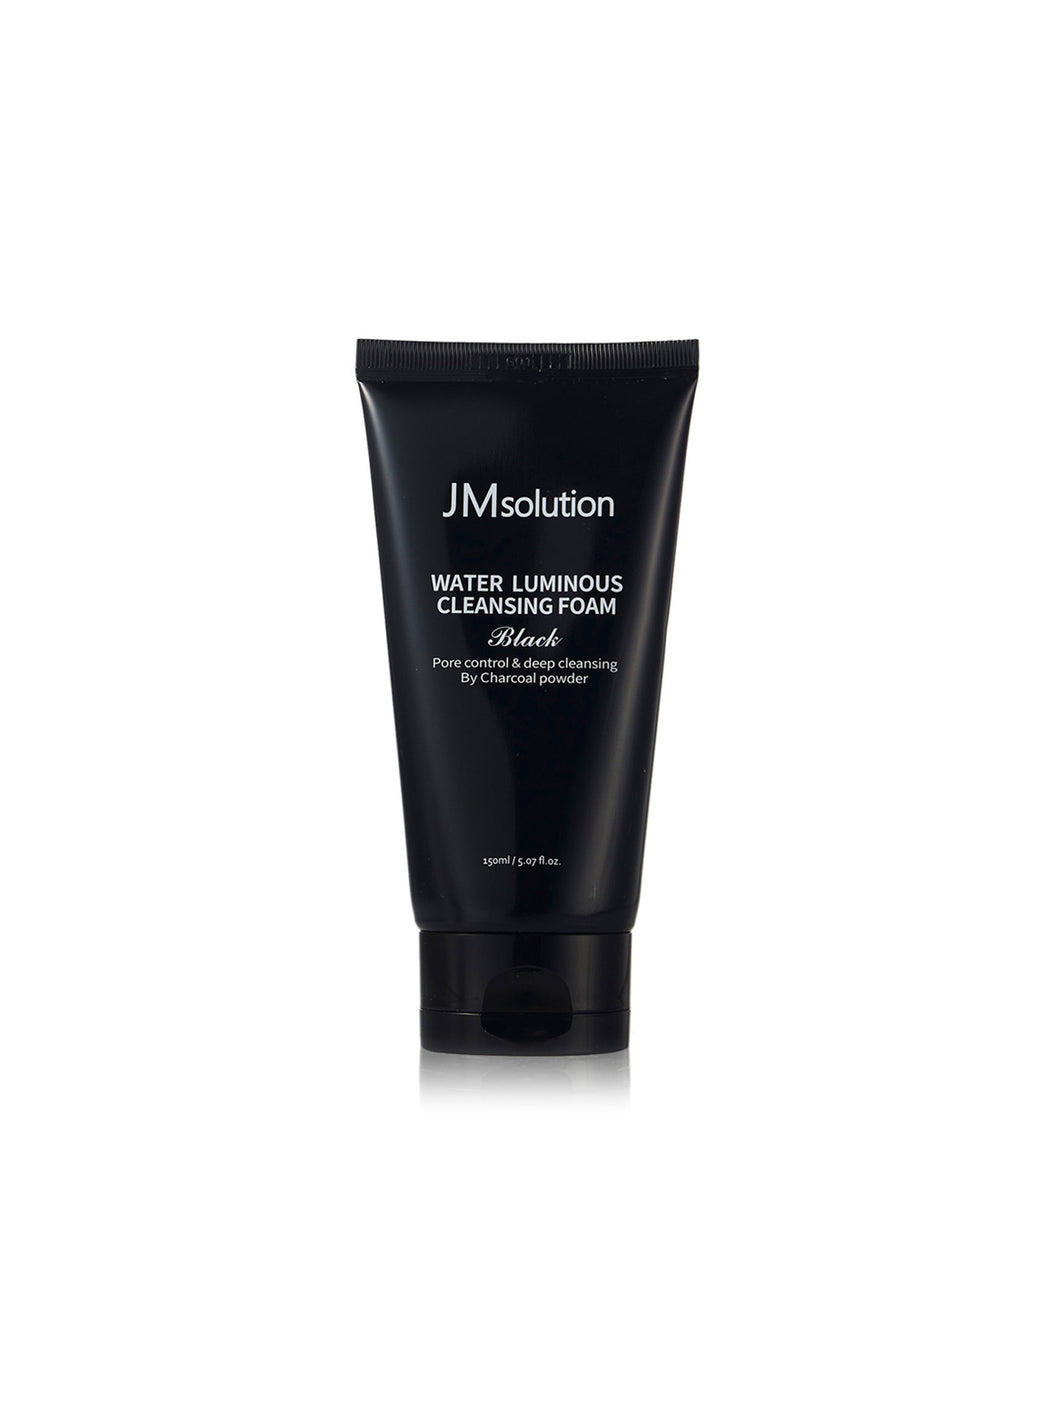 WATER LUMINOUS CLEANSING FOAM BLACK